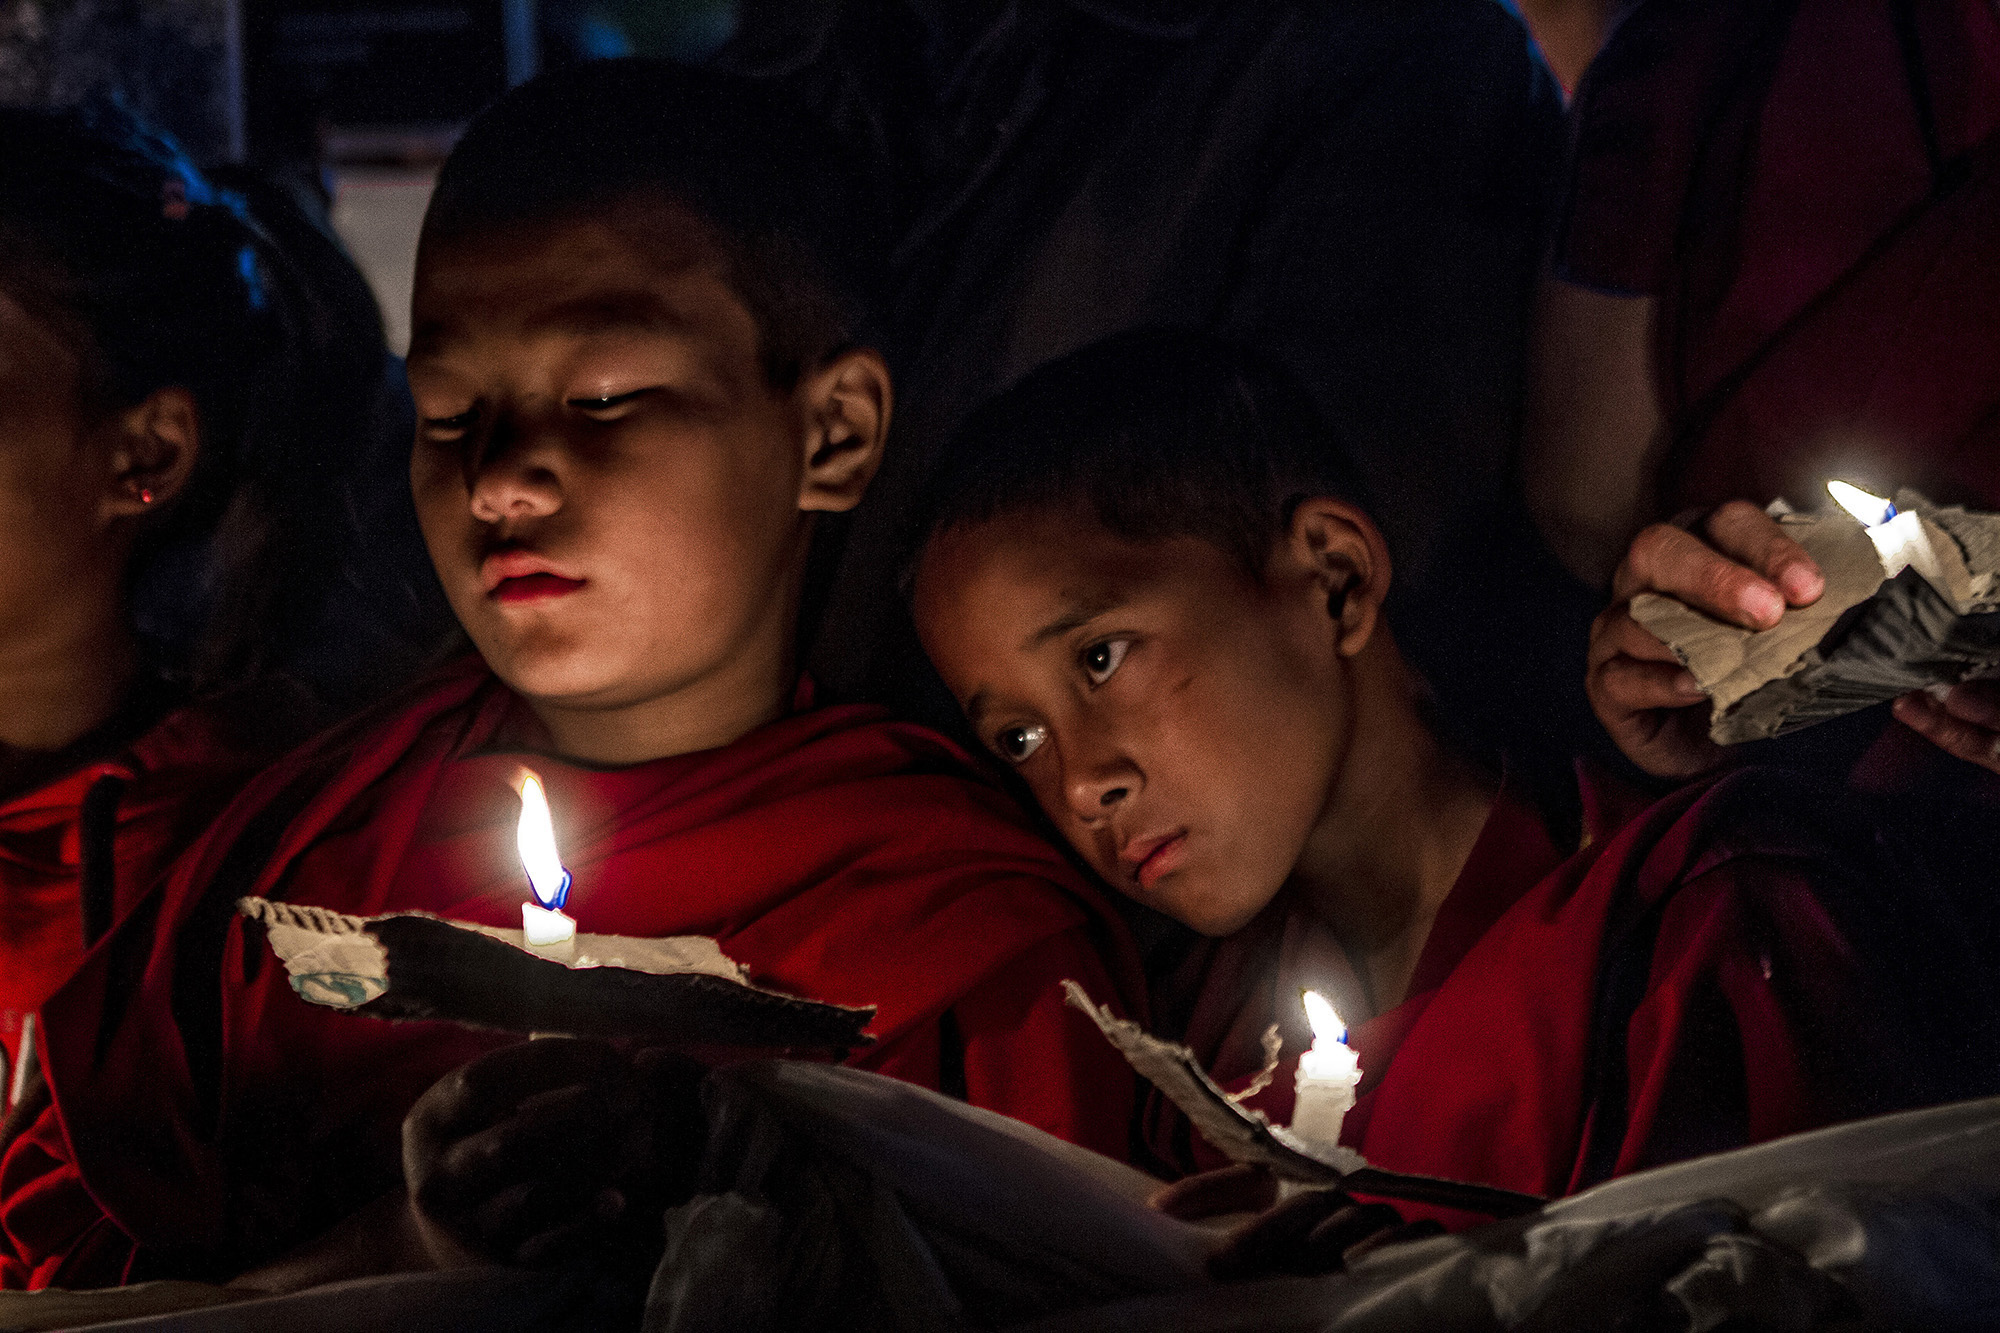 26 October, 2012 – Martyrs Memorial, Tsuglagkhang Temple, McLeod Ganj   Young Tibetan monks attend a candlelight vigil following the news of three more self-immolations in Tibet.